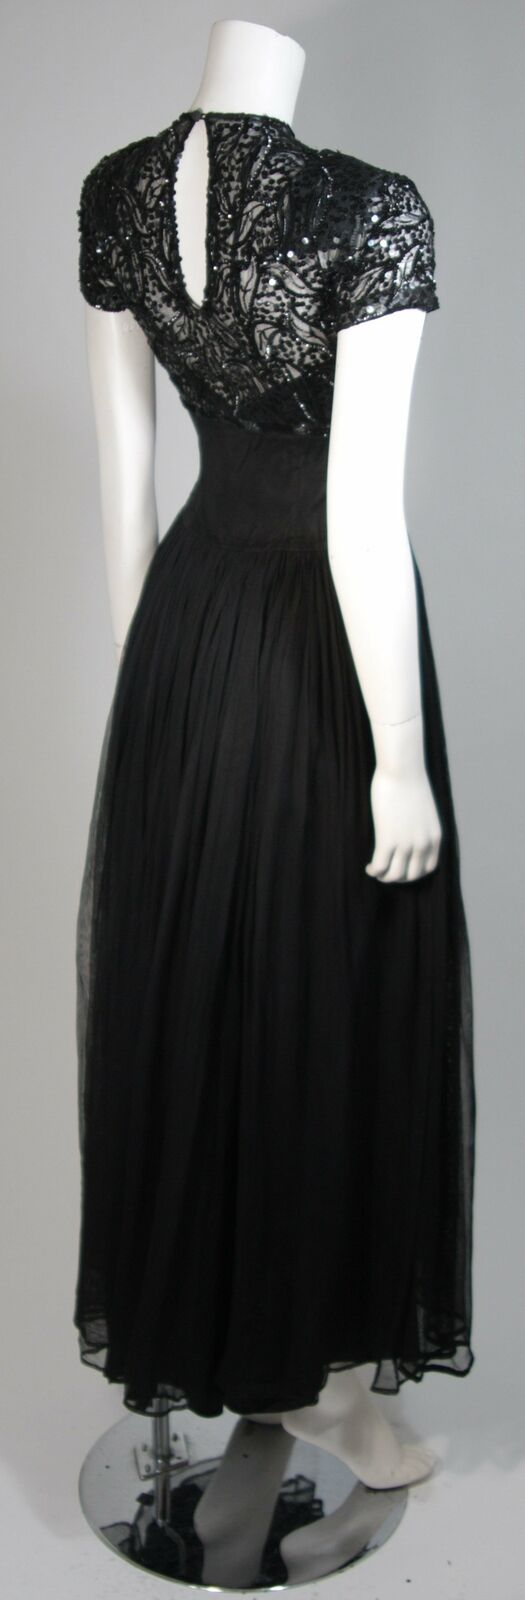 CEIL CHAPMAN Attributed Black Gown Size Small - image 7